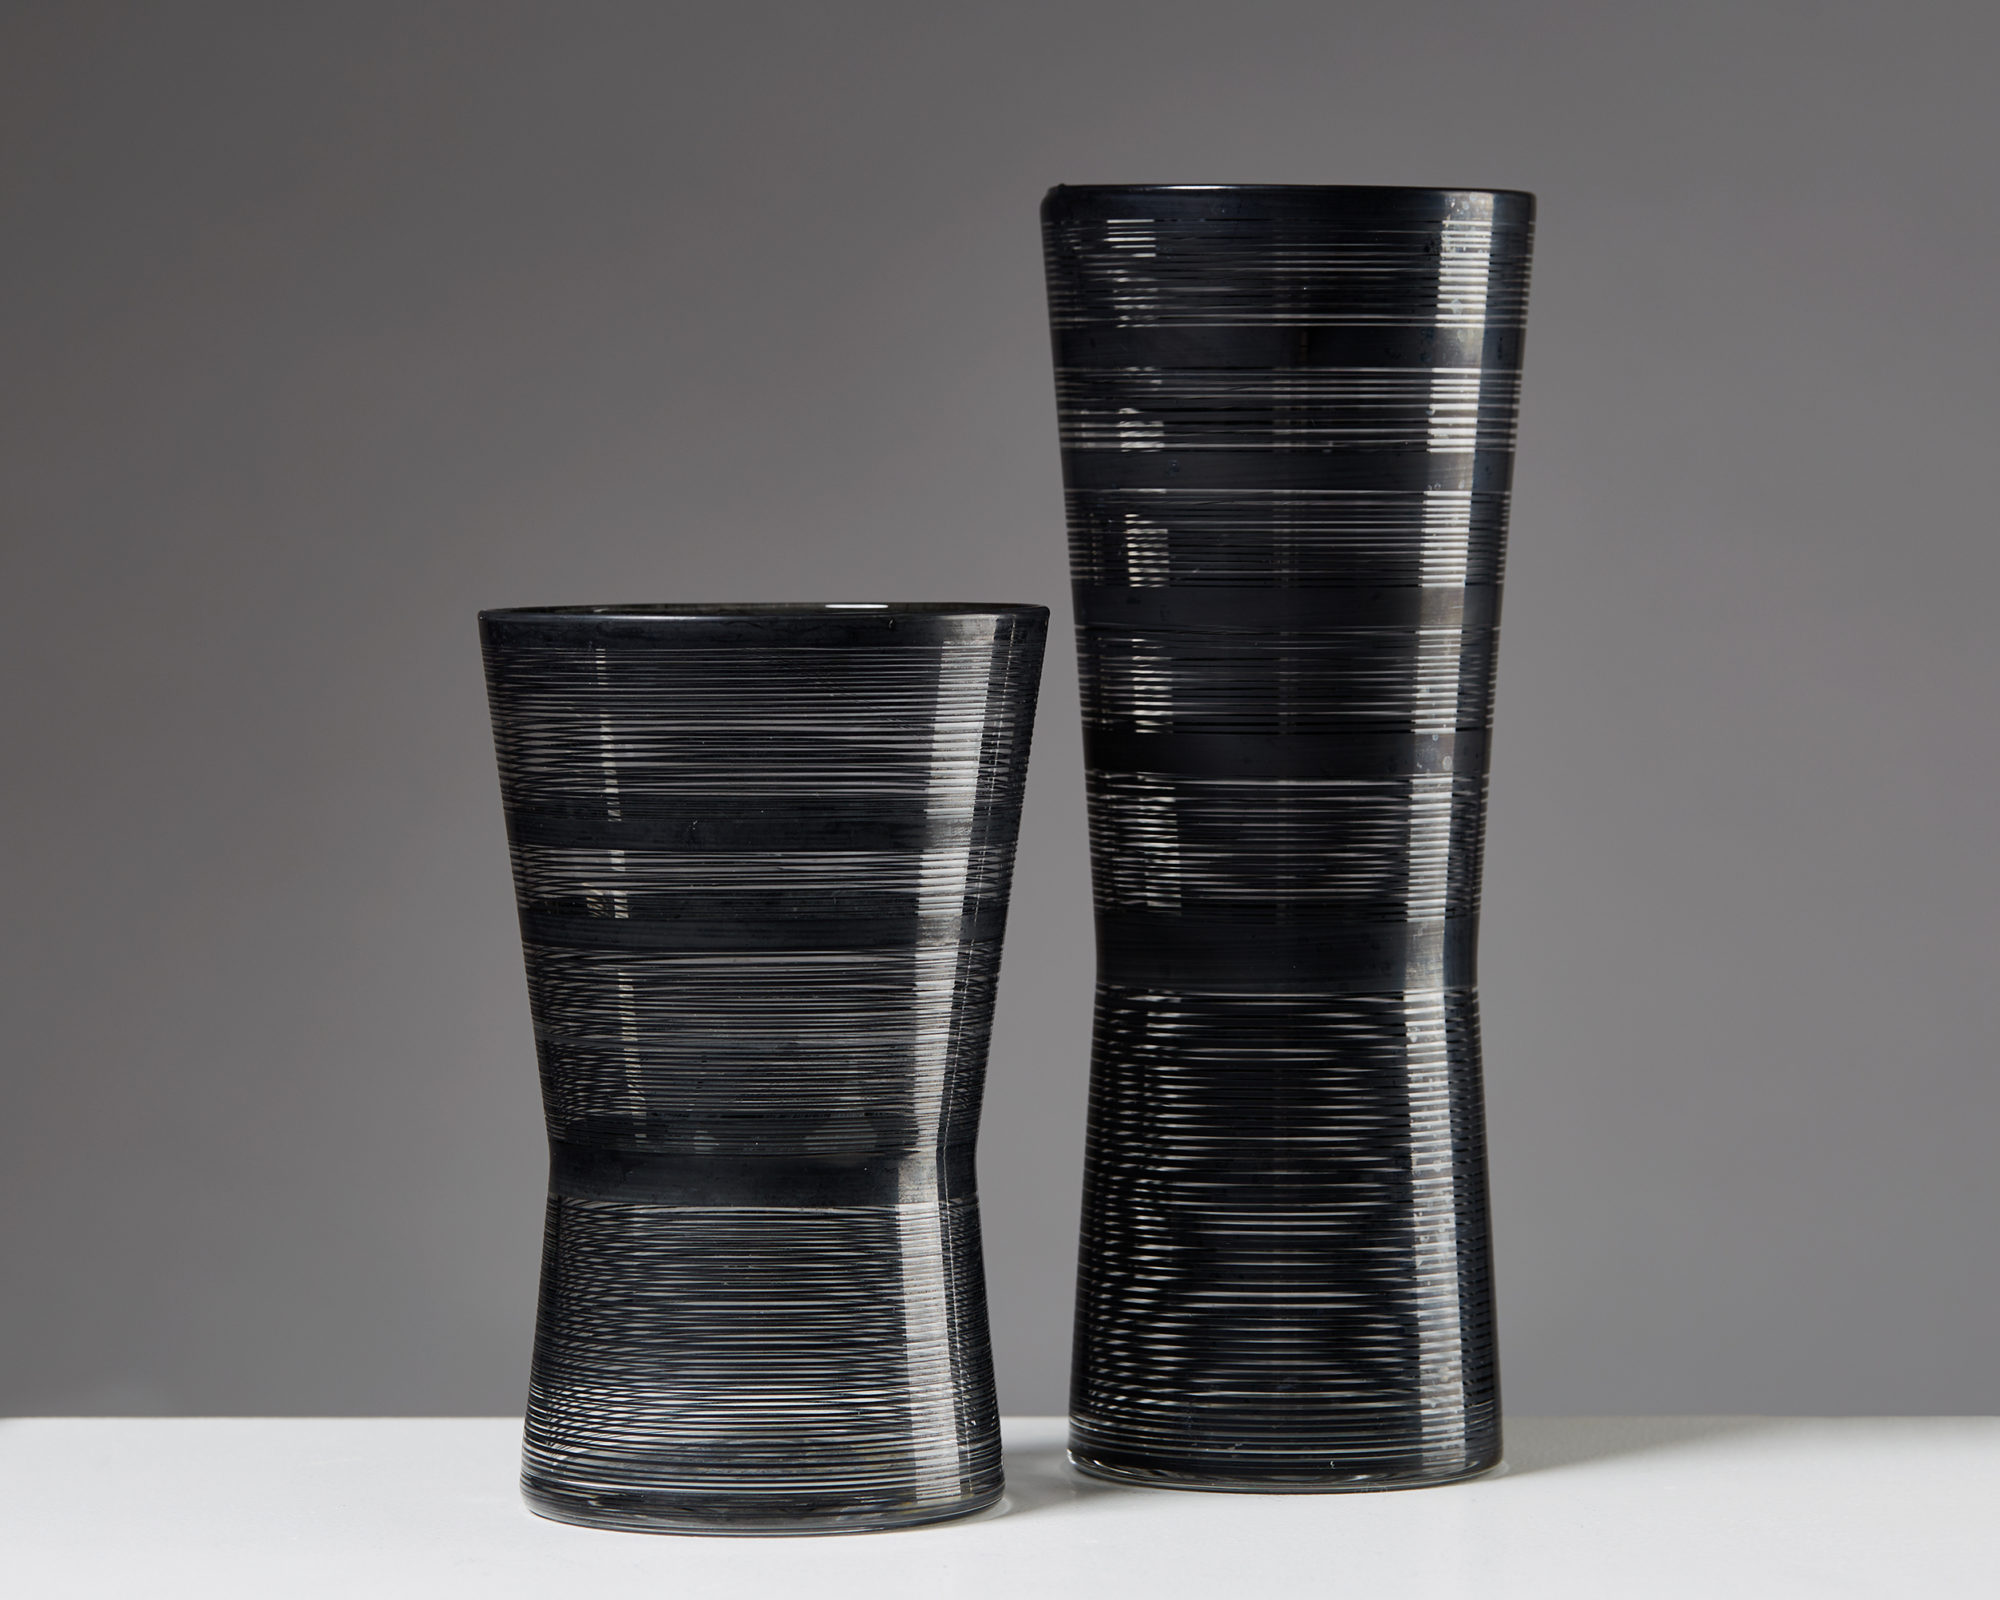 """Pair of Vases """"Zwizz"""" designed by Ingegerd Råman for Orrefors, Sweden. 2000's. by Modernity on curated-crowd.com"""